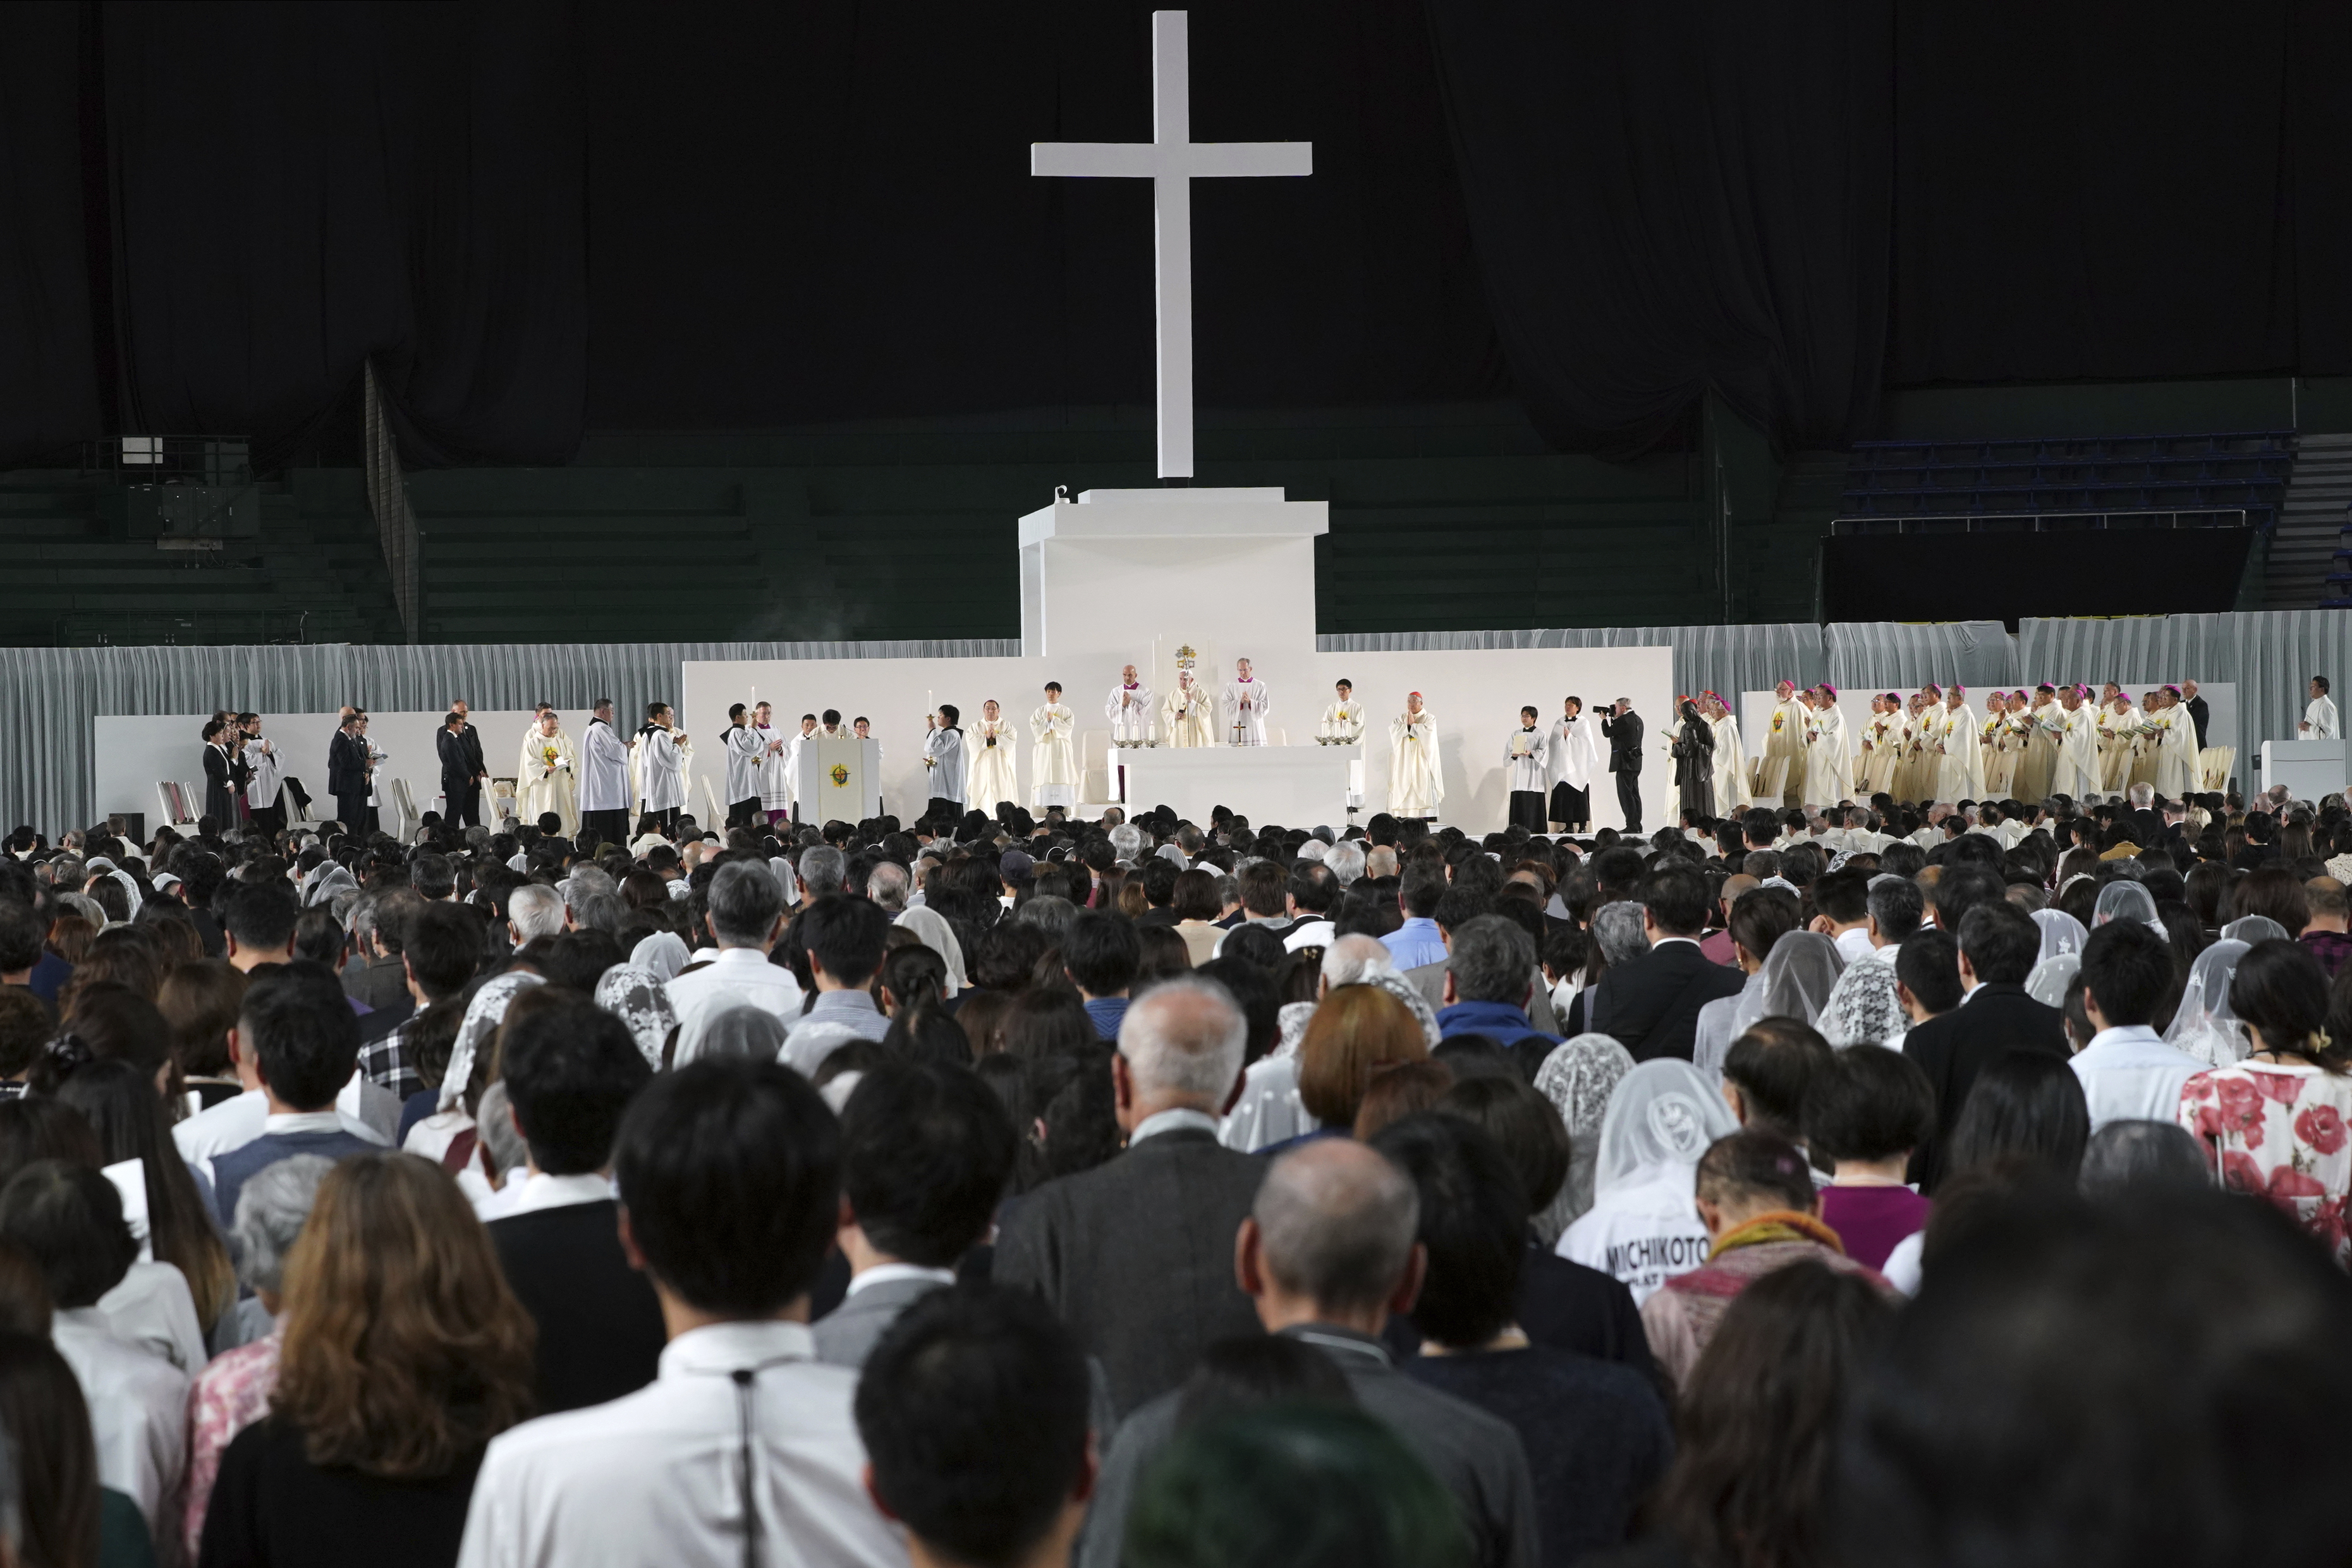 Japanese boxer formerly on death row attends pope's Mass